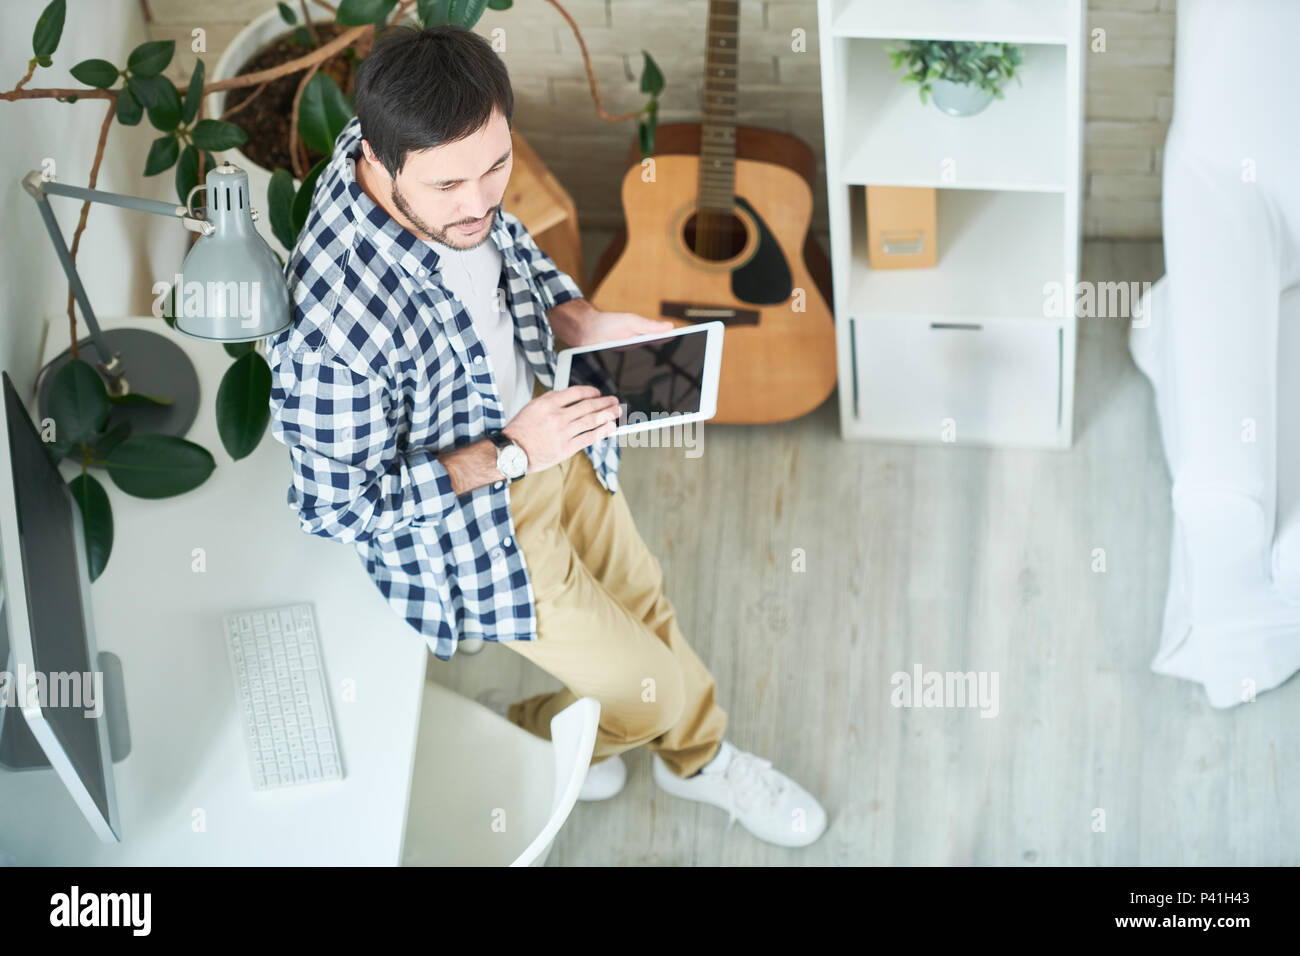 Creative man with tablet in studio - Stock Image